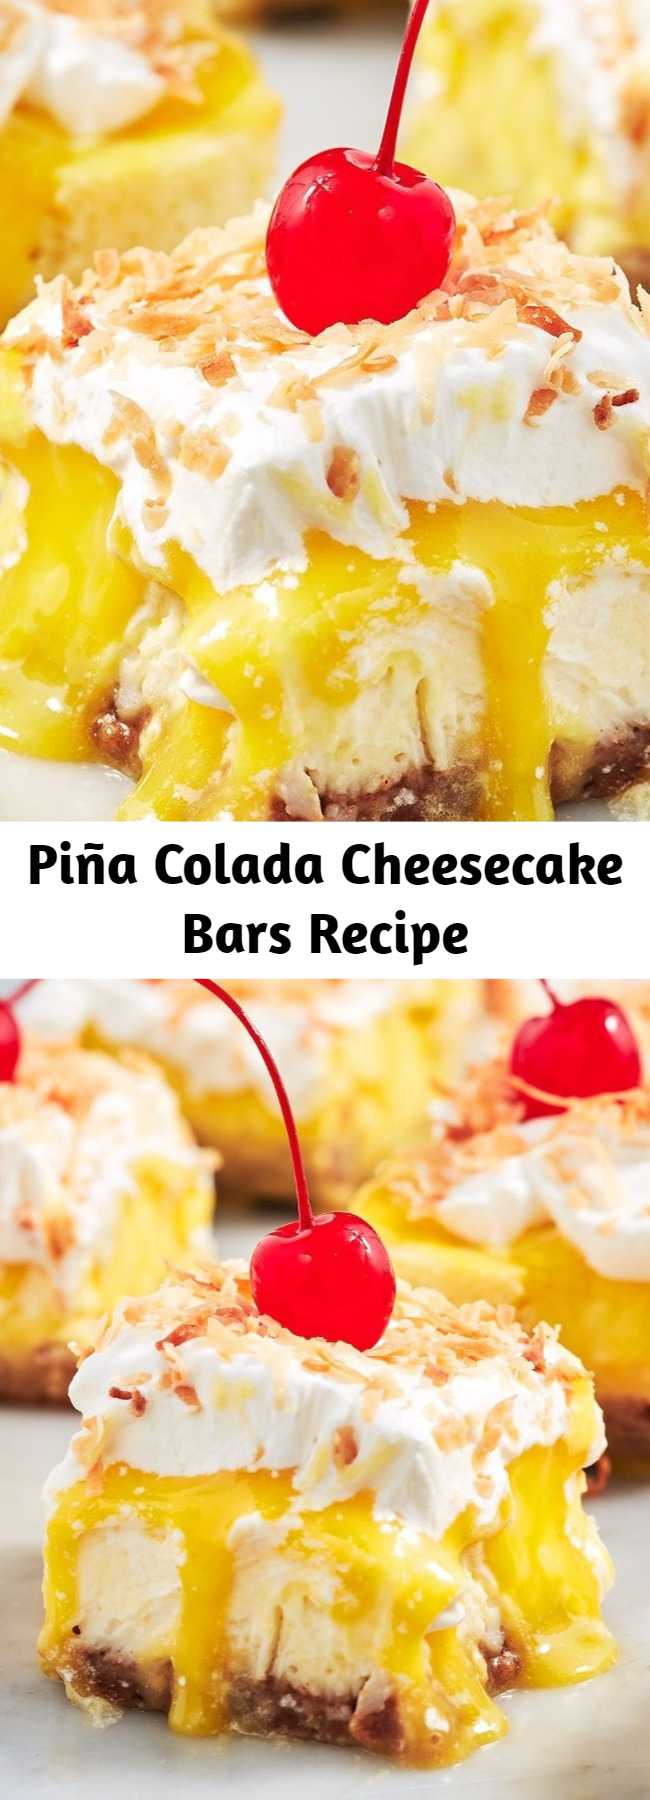 The pineapple curd on these bars is TOO good. One bite will transport you to the beach, piña colada in hand. 😎